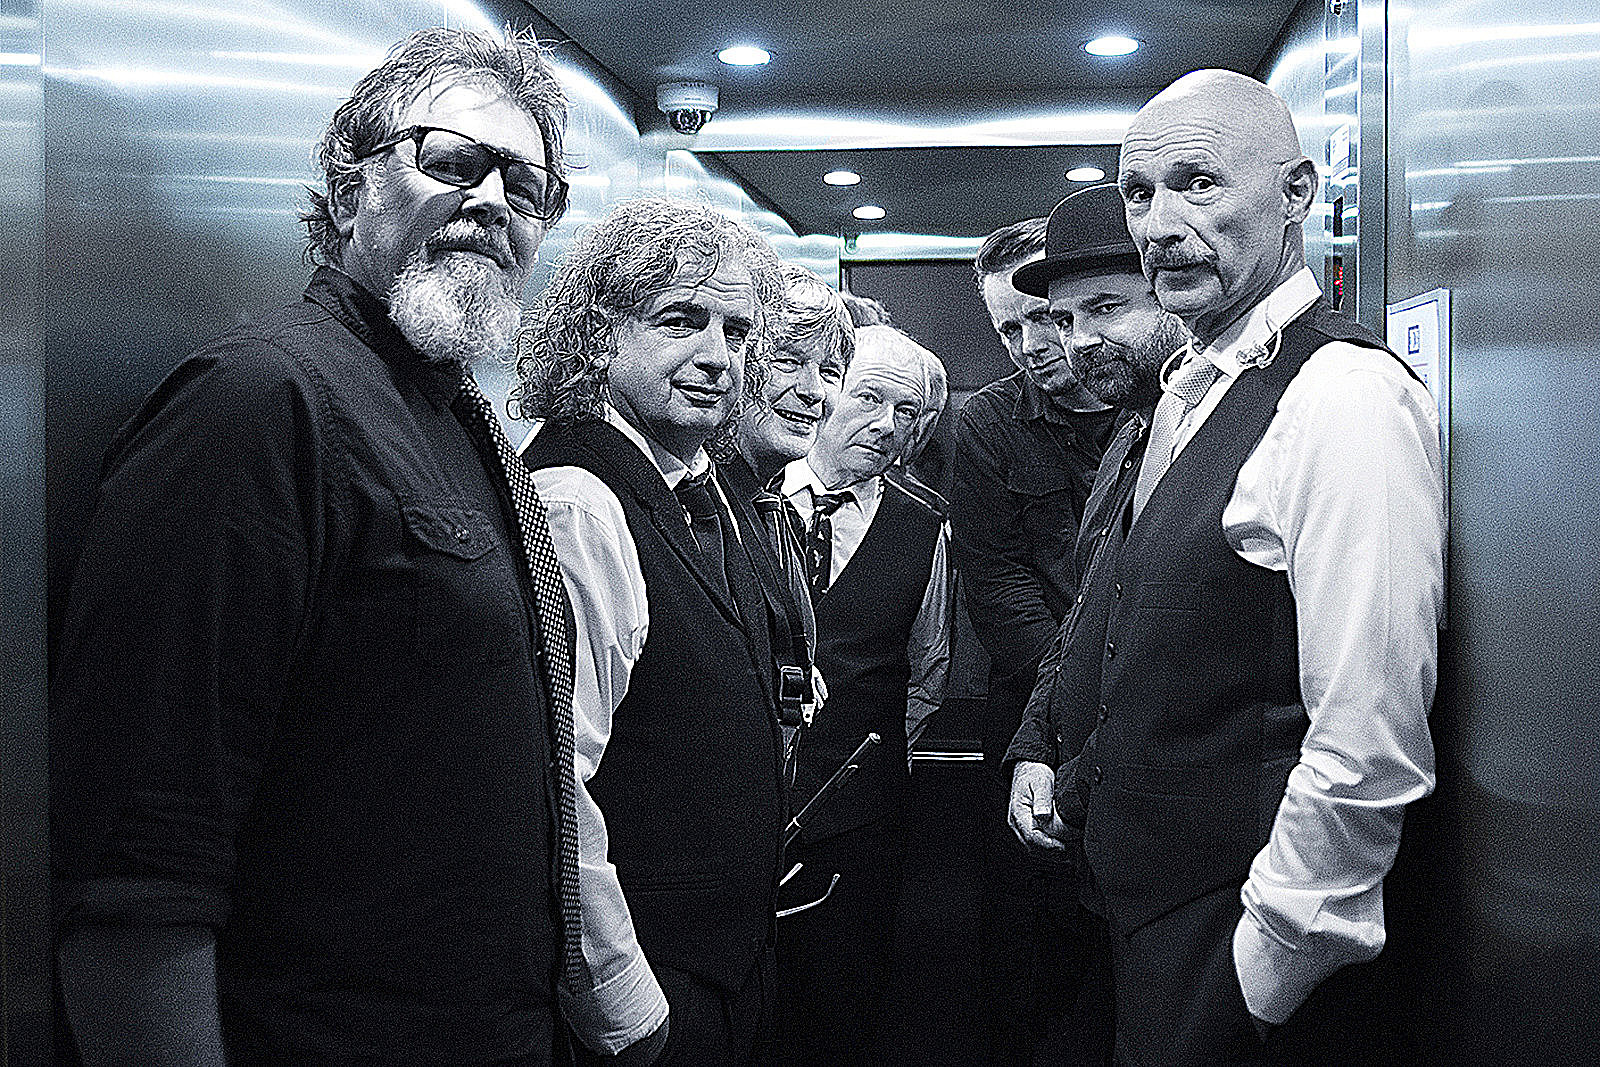 King Crimson Touring the U.S. for the 'Last Time'